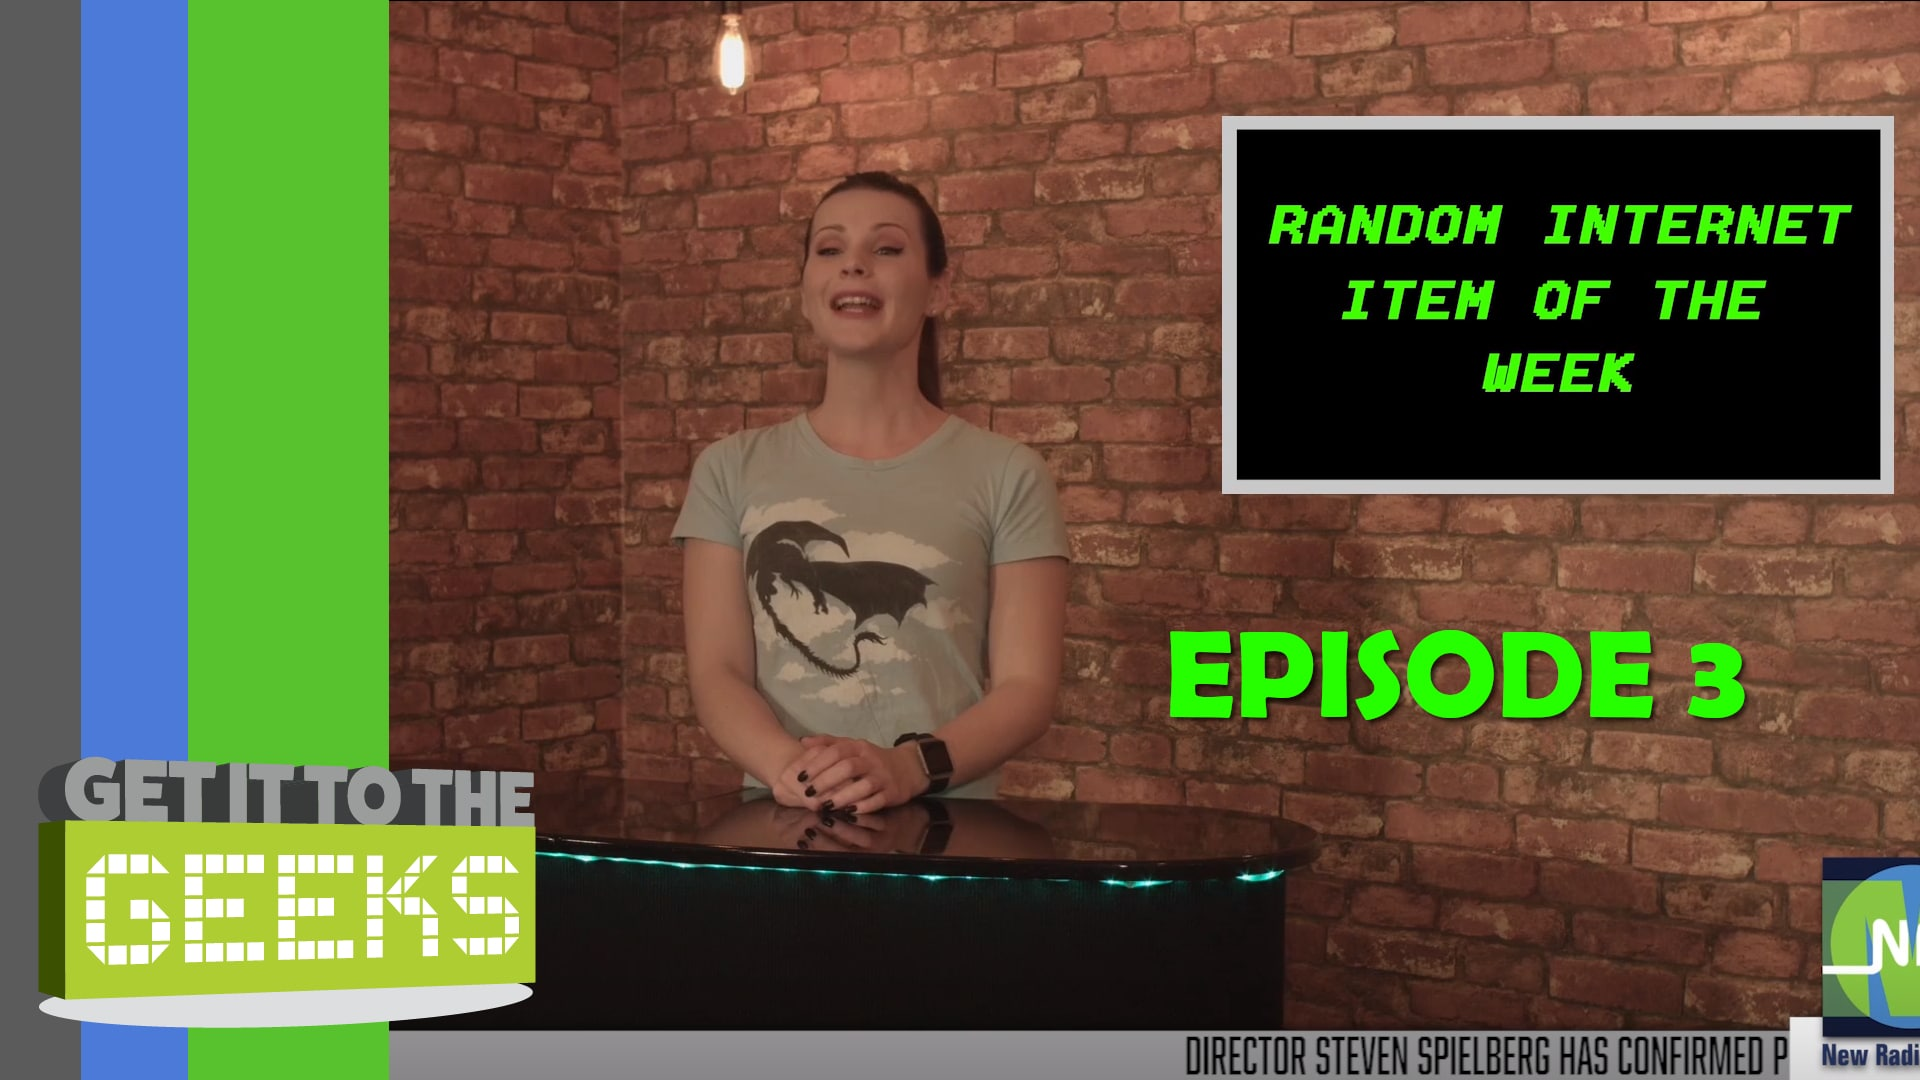 Get It To The Geeks - Episode 3:Jordan and the Return of the Prisoner from the Last Crusade